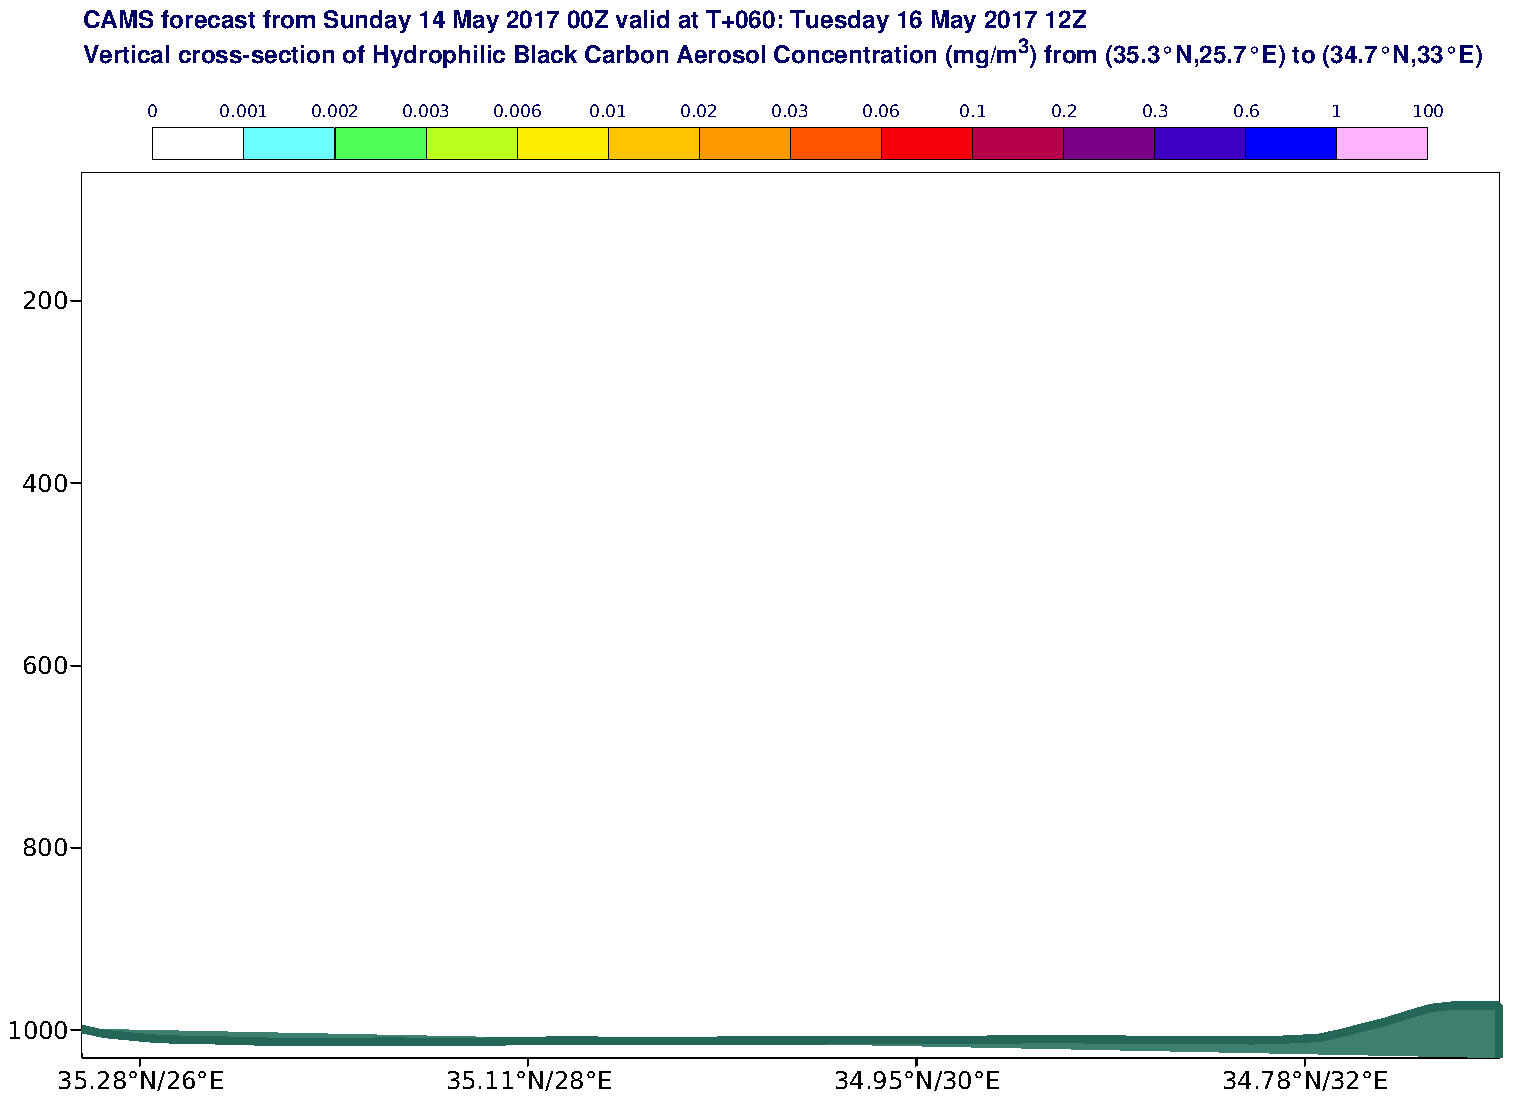 Vertical cross-section of Hydrophilic Black Carbon Aerosol Concentration (mg/m3) valid at T60 - 2017-05-16 12:00